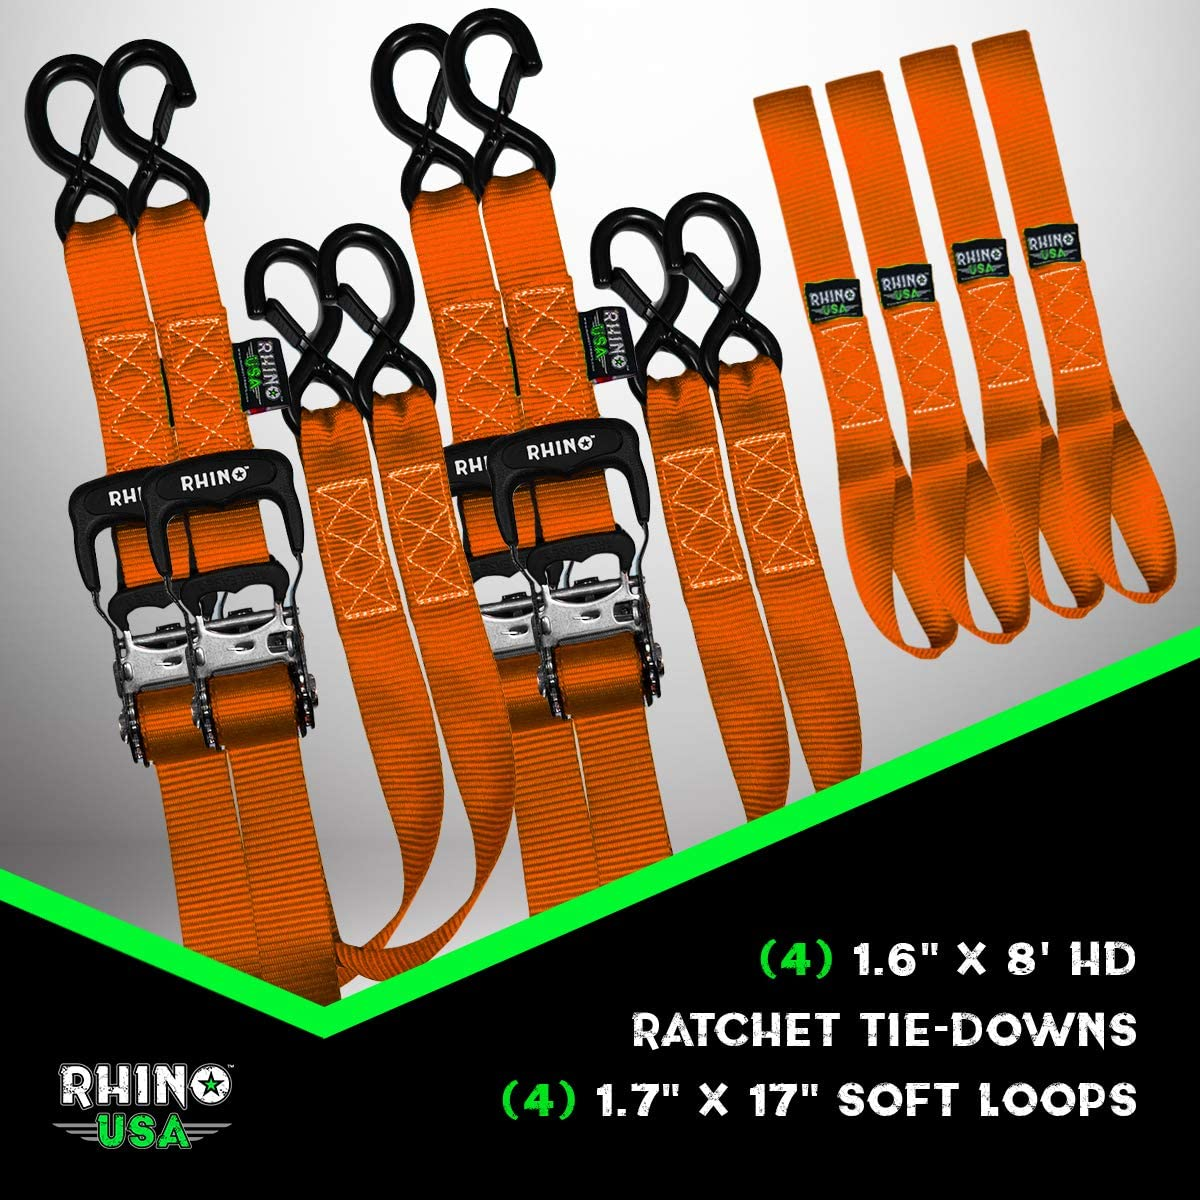 RHINO USA Ratchet Straps Motorcycle Tie Down Kit 2 BLUE Soft Loop Tie-Downs 5,208 Break Strength - 2 Heavy Duty 1.6 x 8 Rachet Tiedowns with Padded Handles /& Coated Chromoly S Hooks +